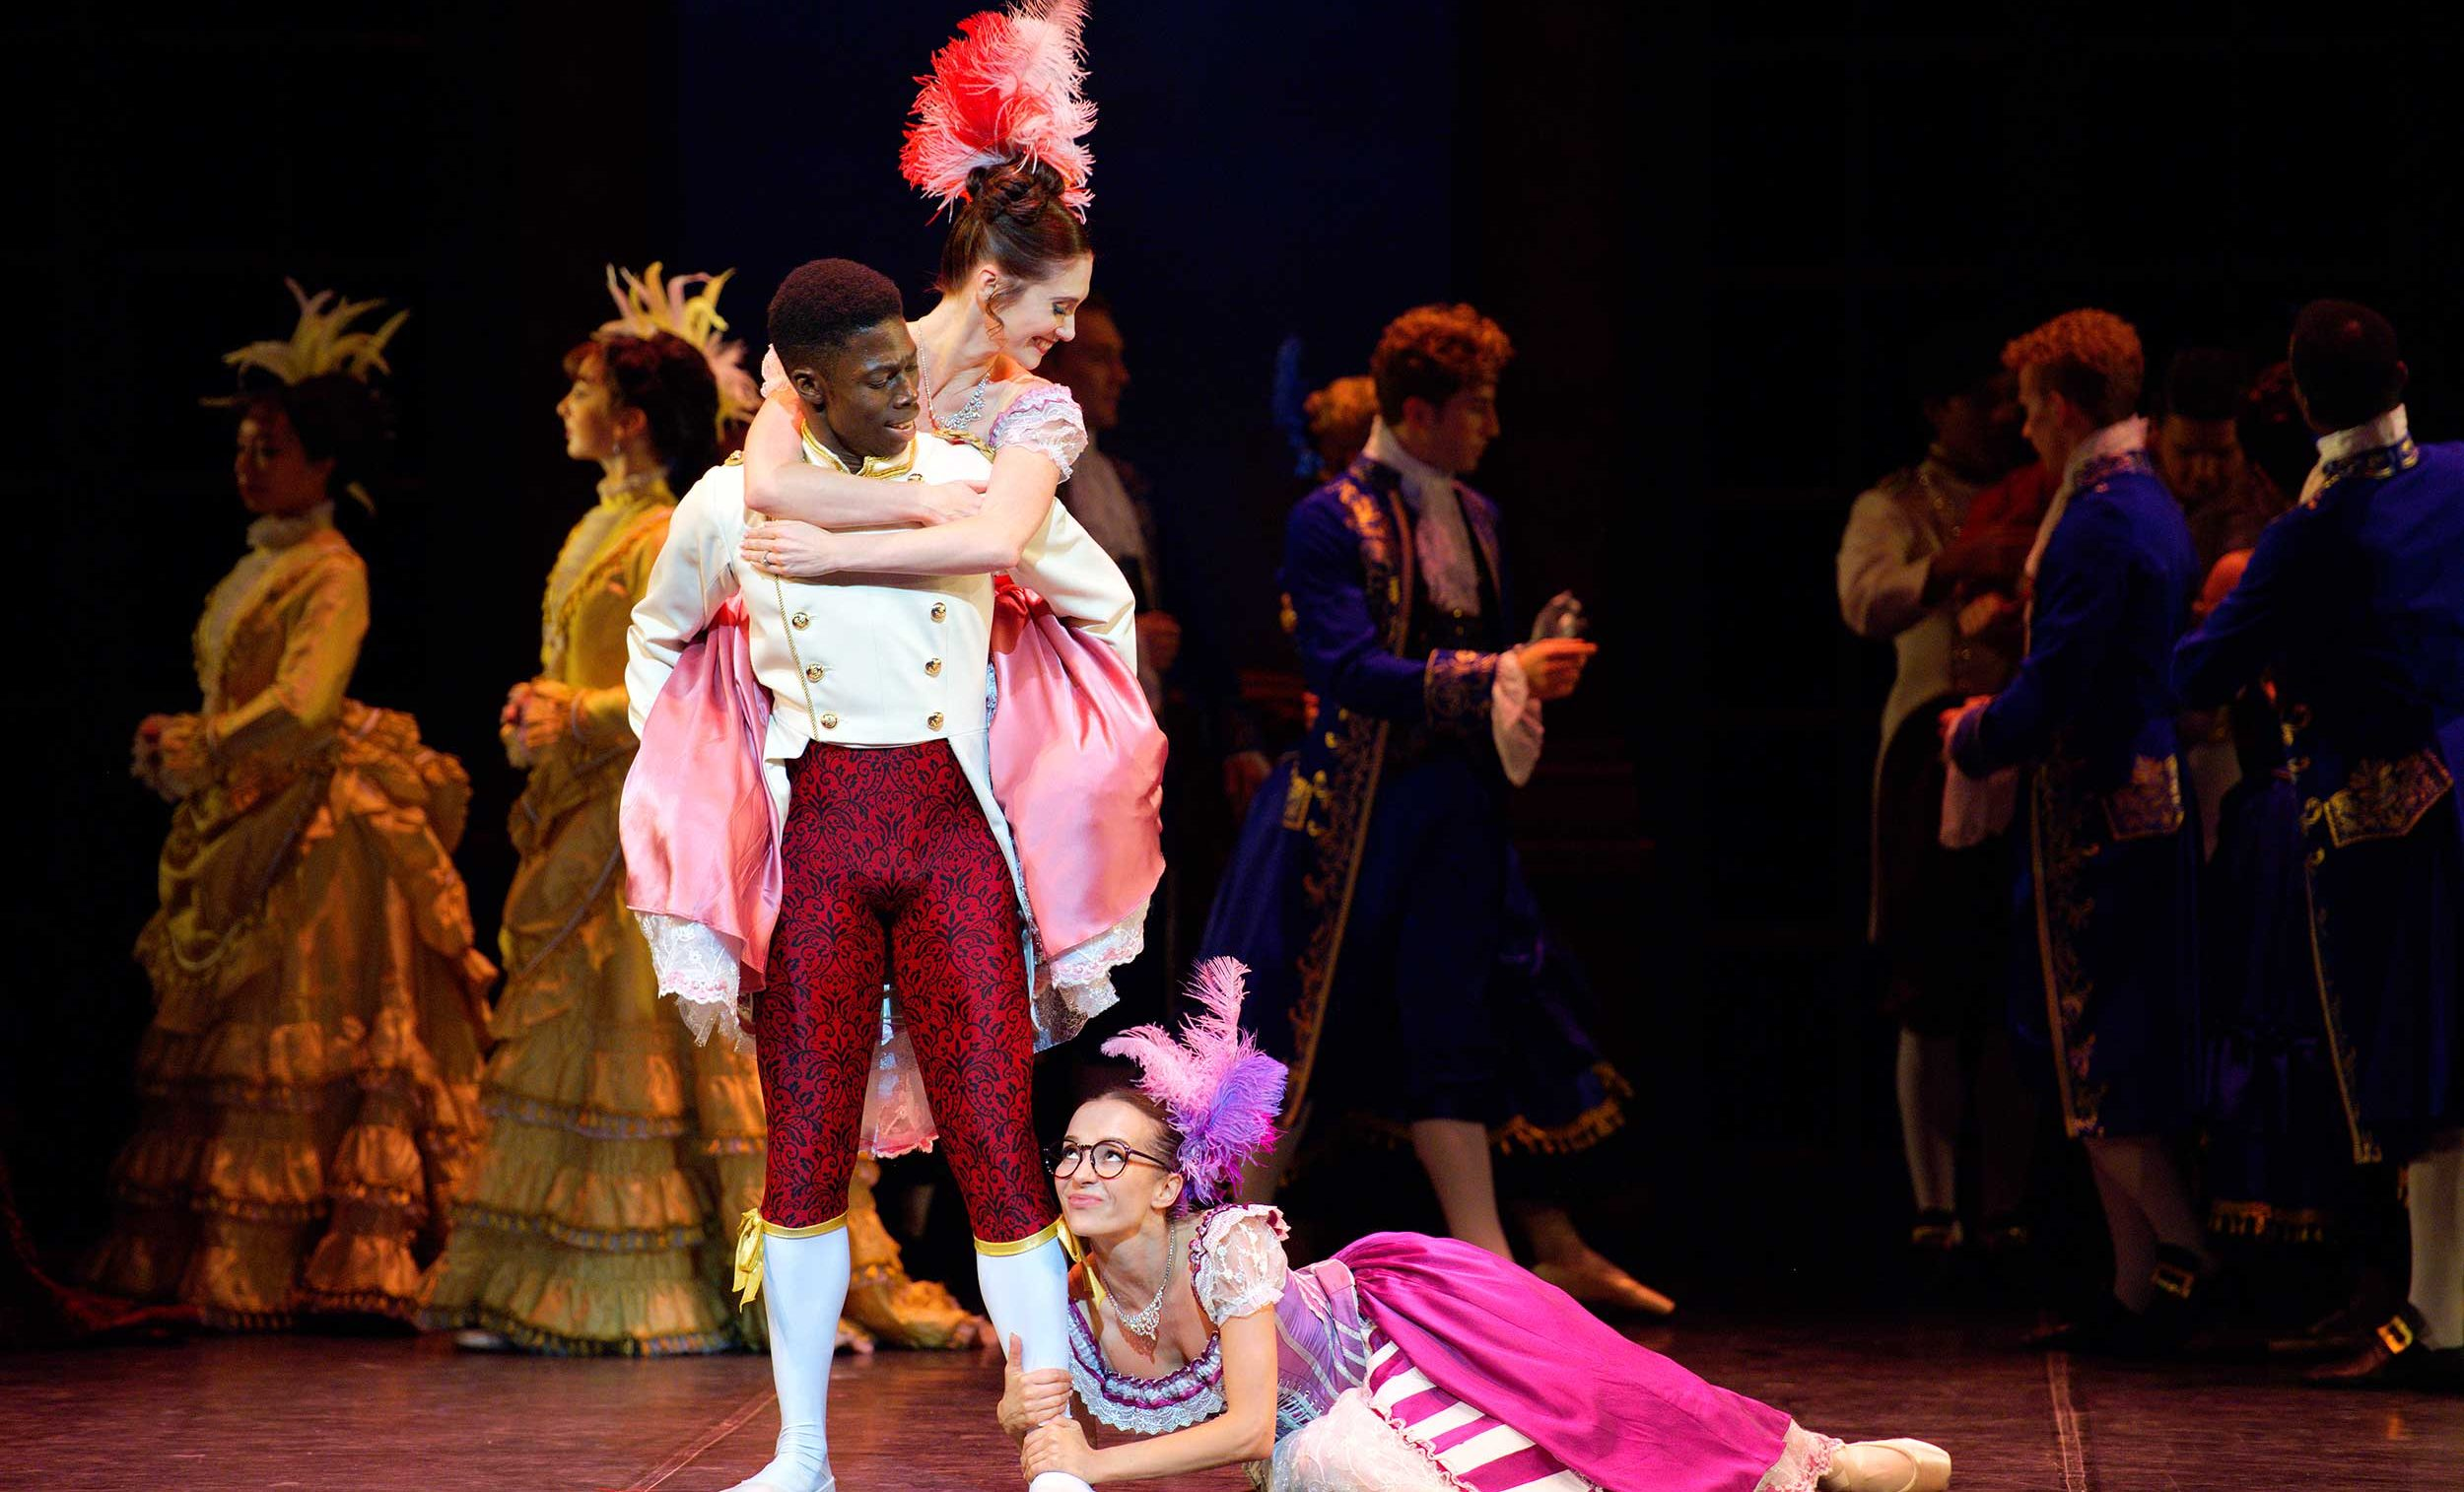 WEB-Brooklyn-Mack-with-Katja-Khaiukova-and-Alison-McWhinney-in-English-National-Ballet's-Cinderella-(C)-Laurent-Liotardo